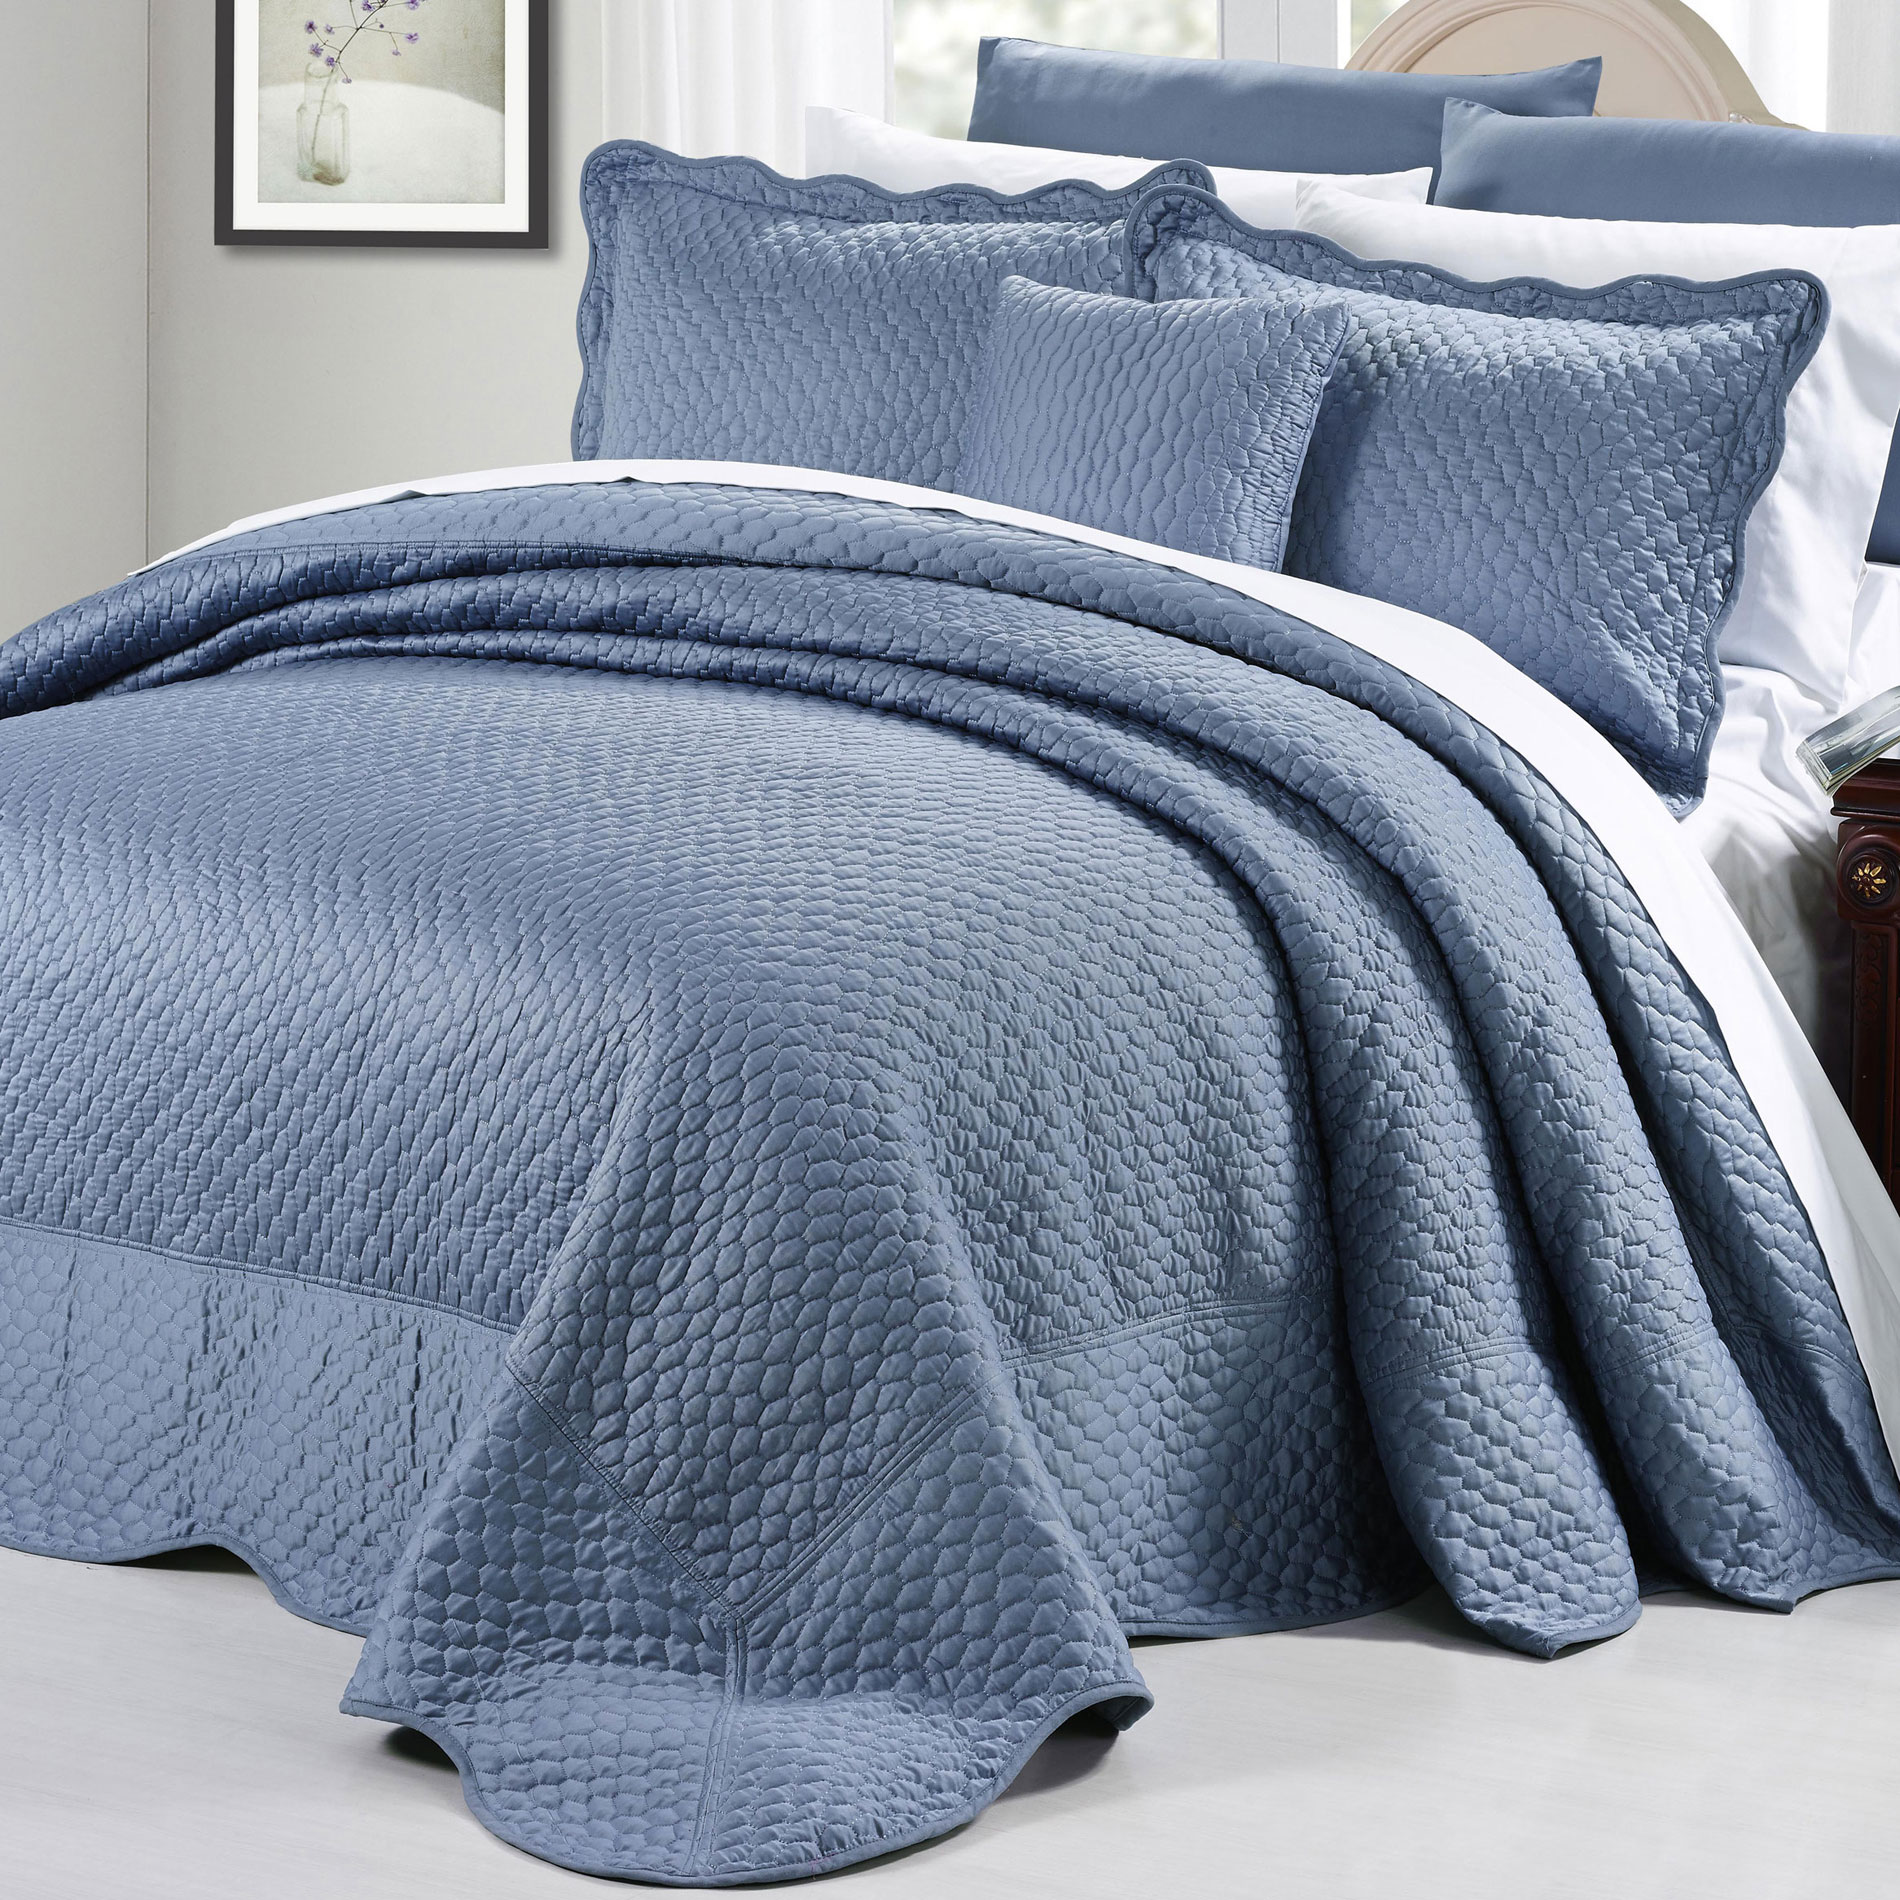 Serenta Ruffle Matte Satin 4 Piece Bed Spread Set